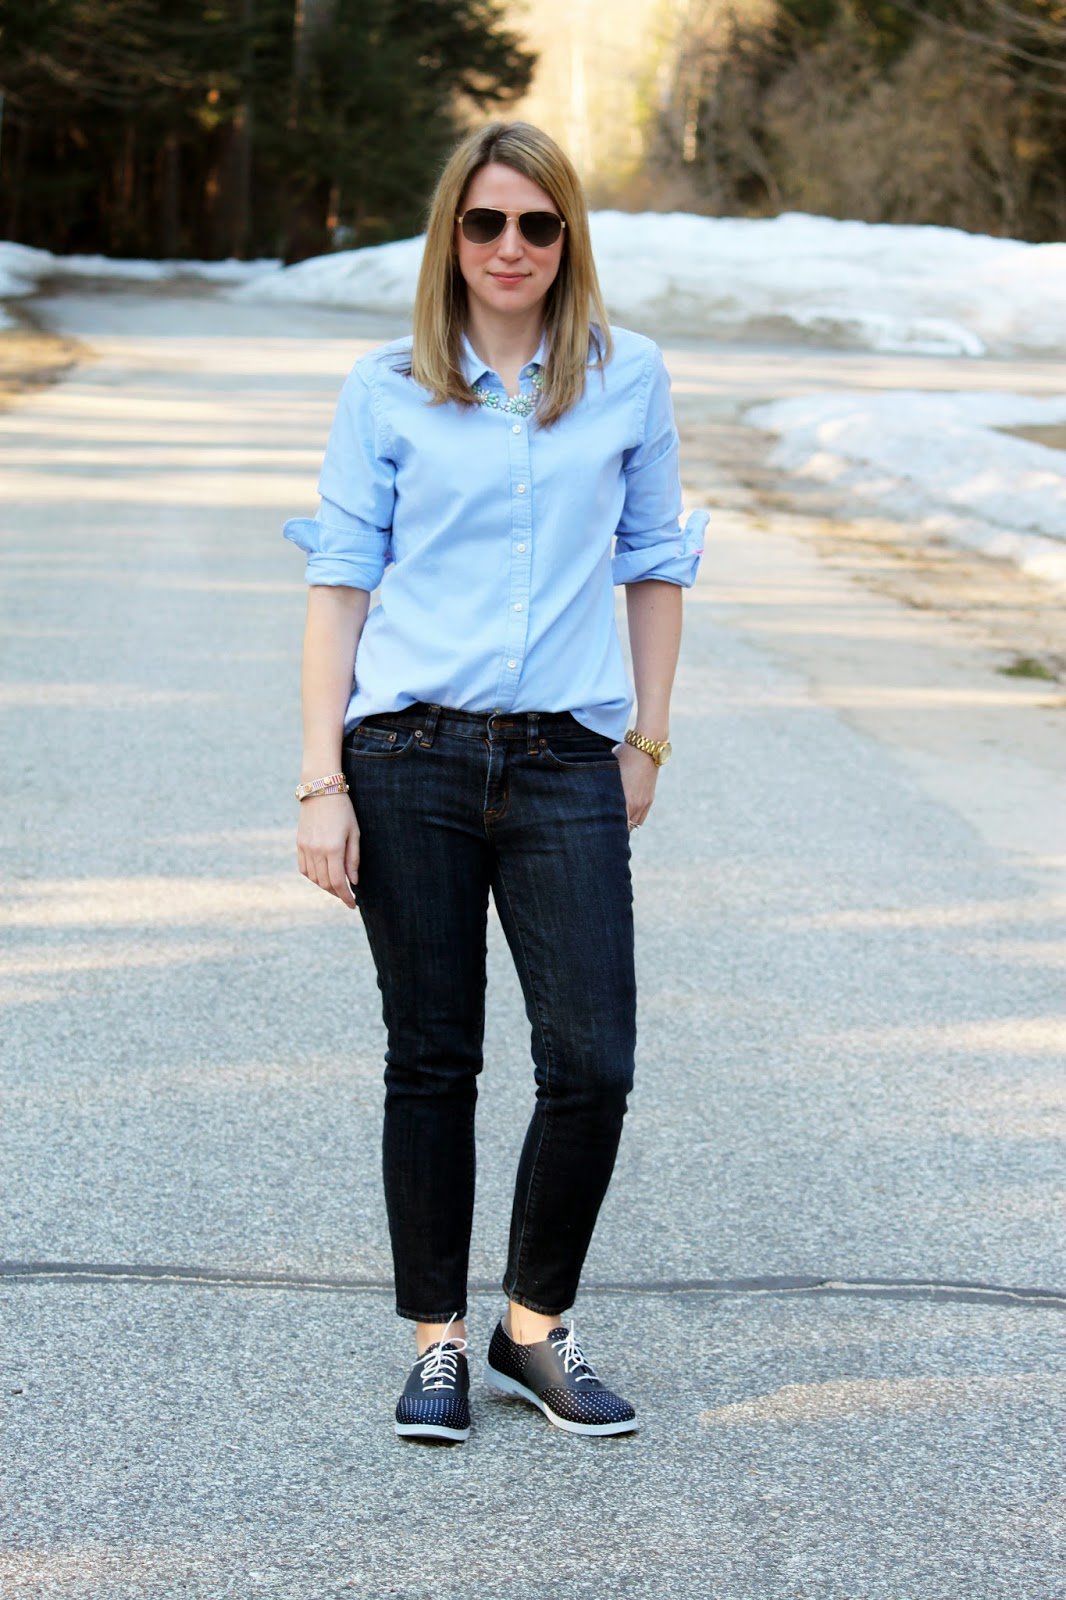 Blue Oxford Shirt + Polka Dot Oxford Shoes // The Salty Hanger